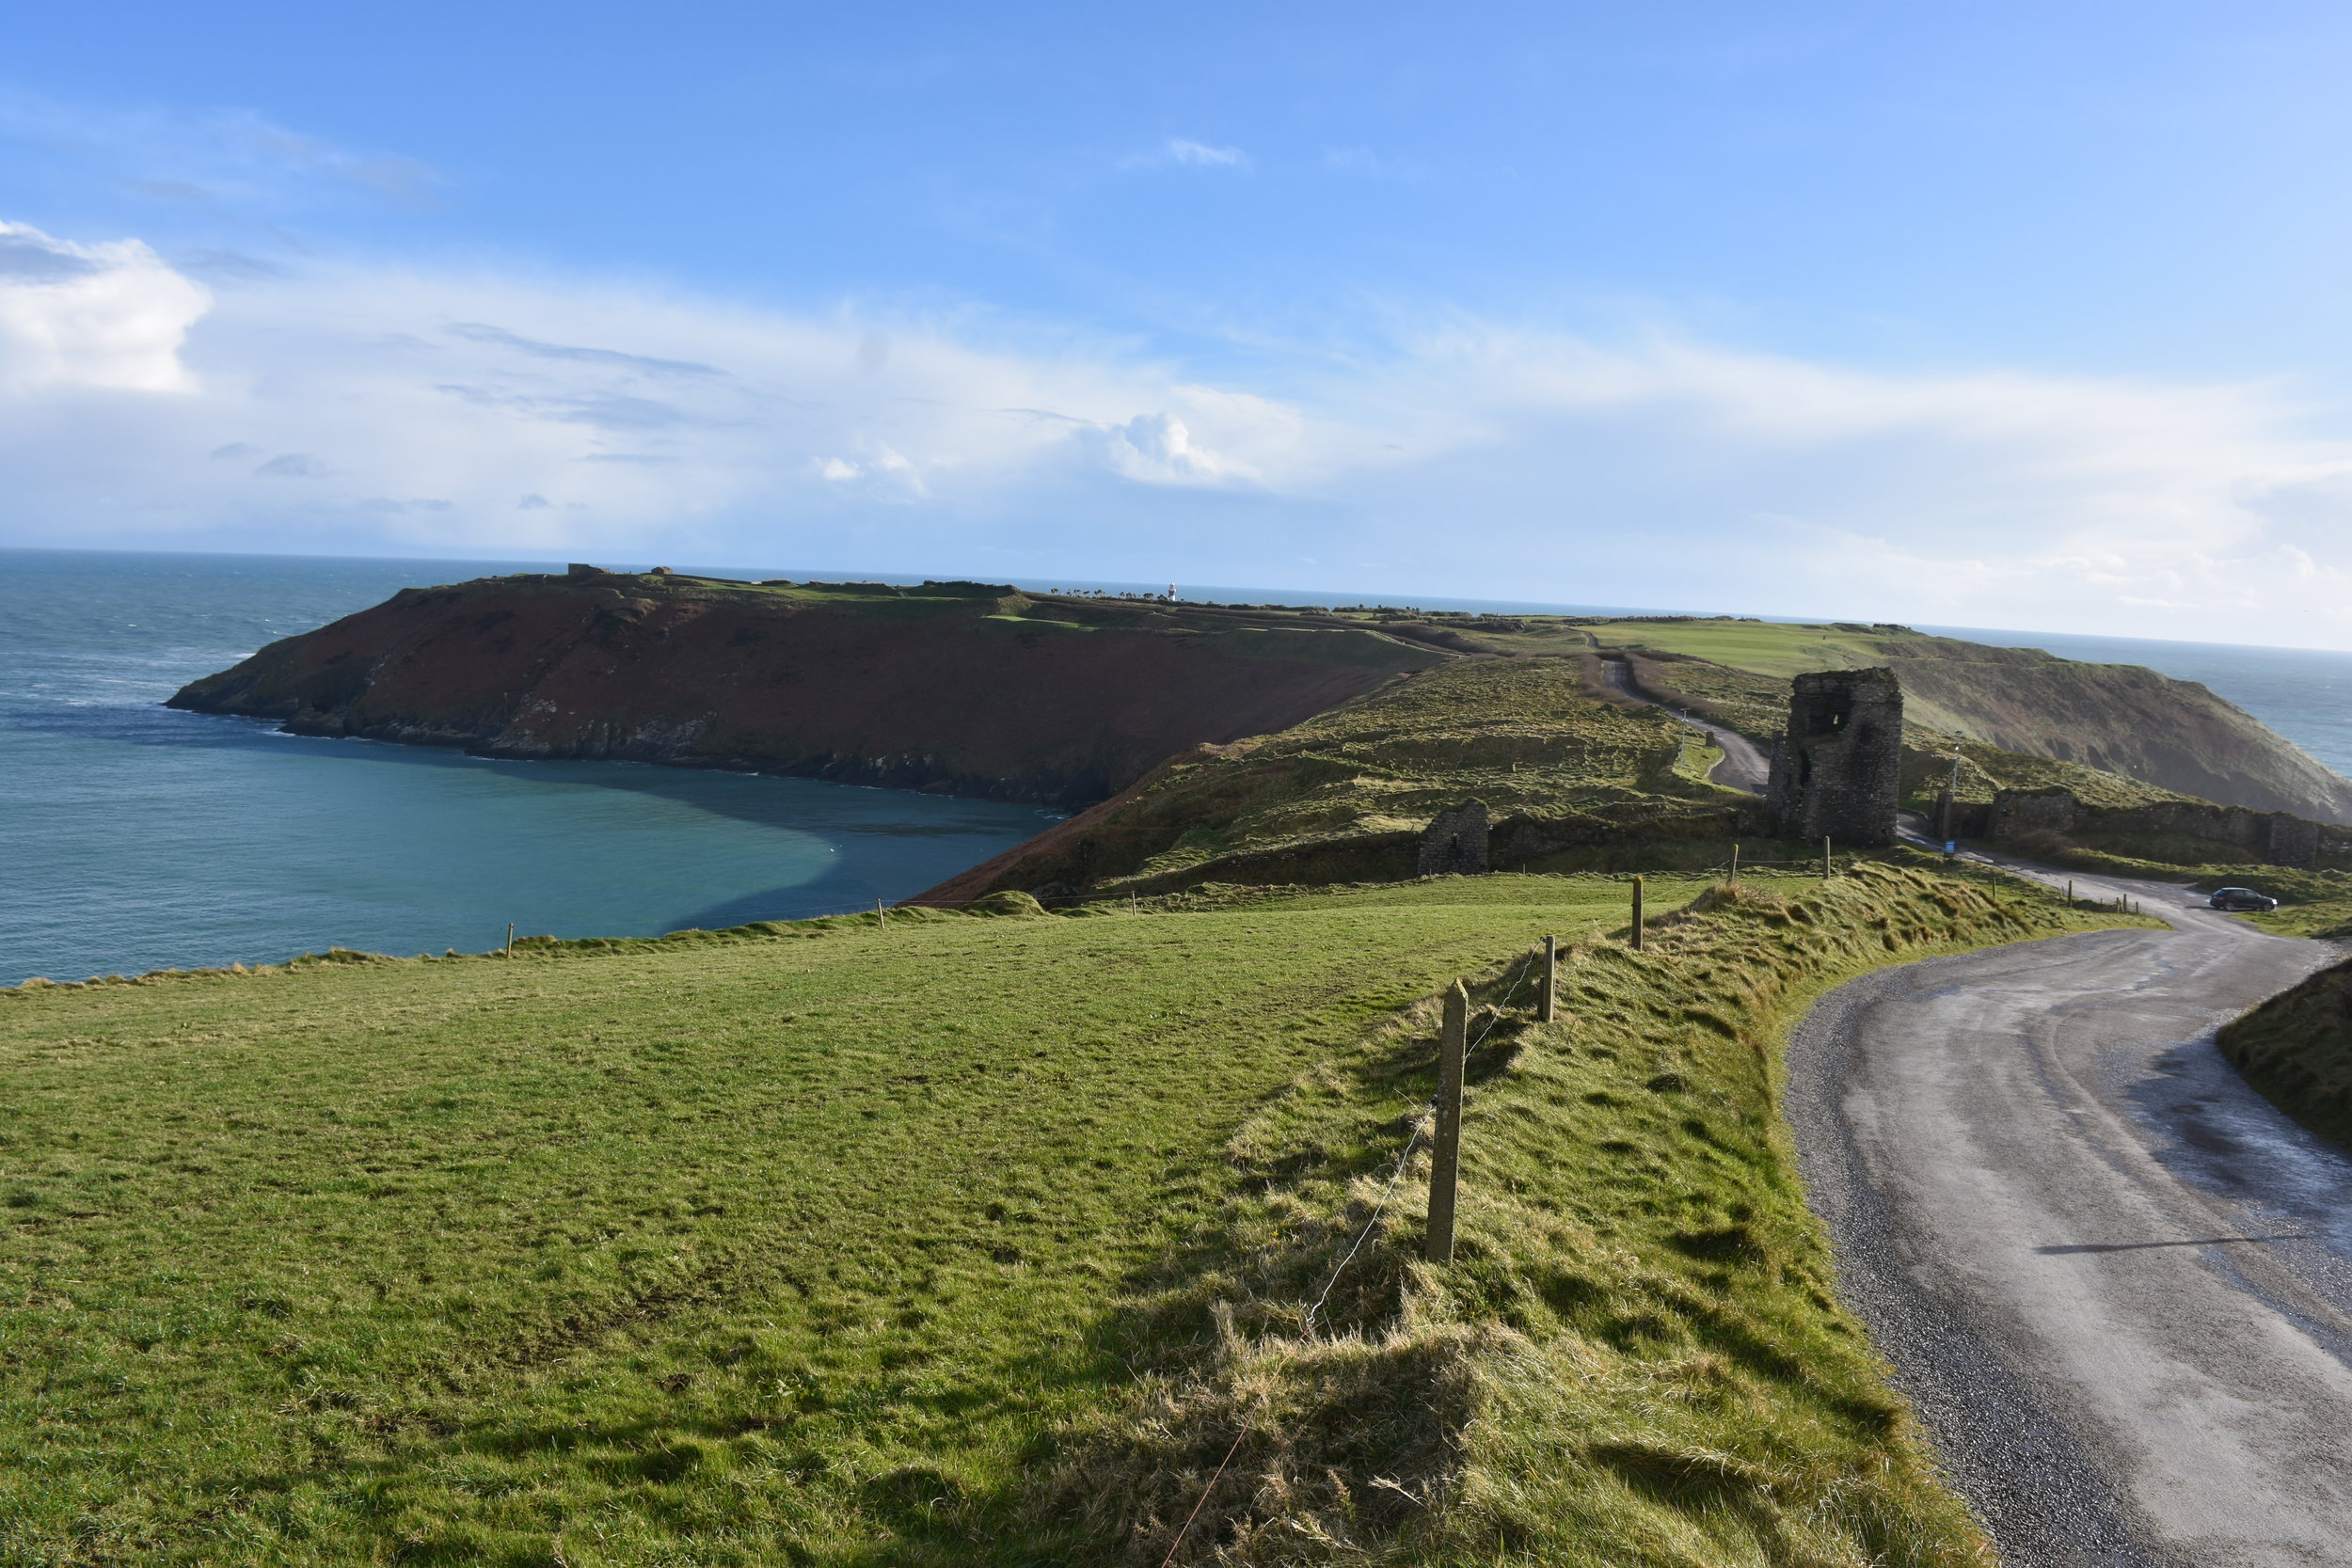 The approach to Old Head. Note, I'm on the left side of the road. Topsy turvy.